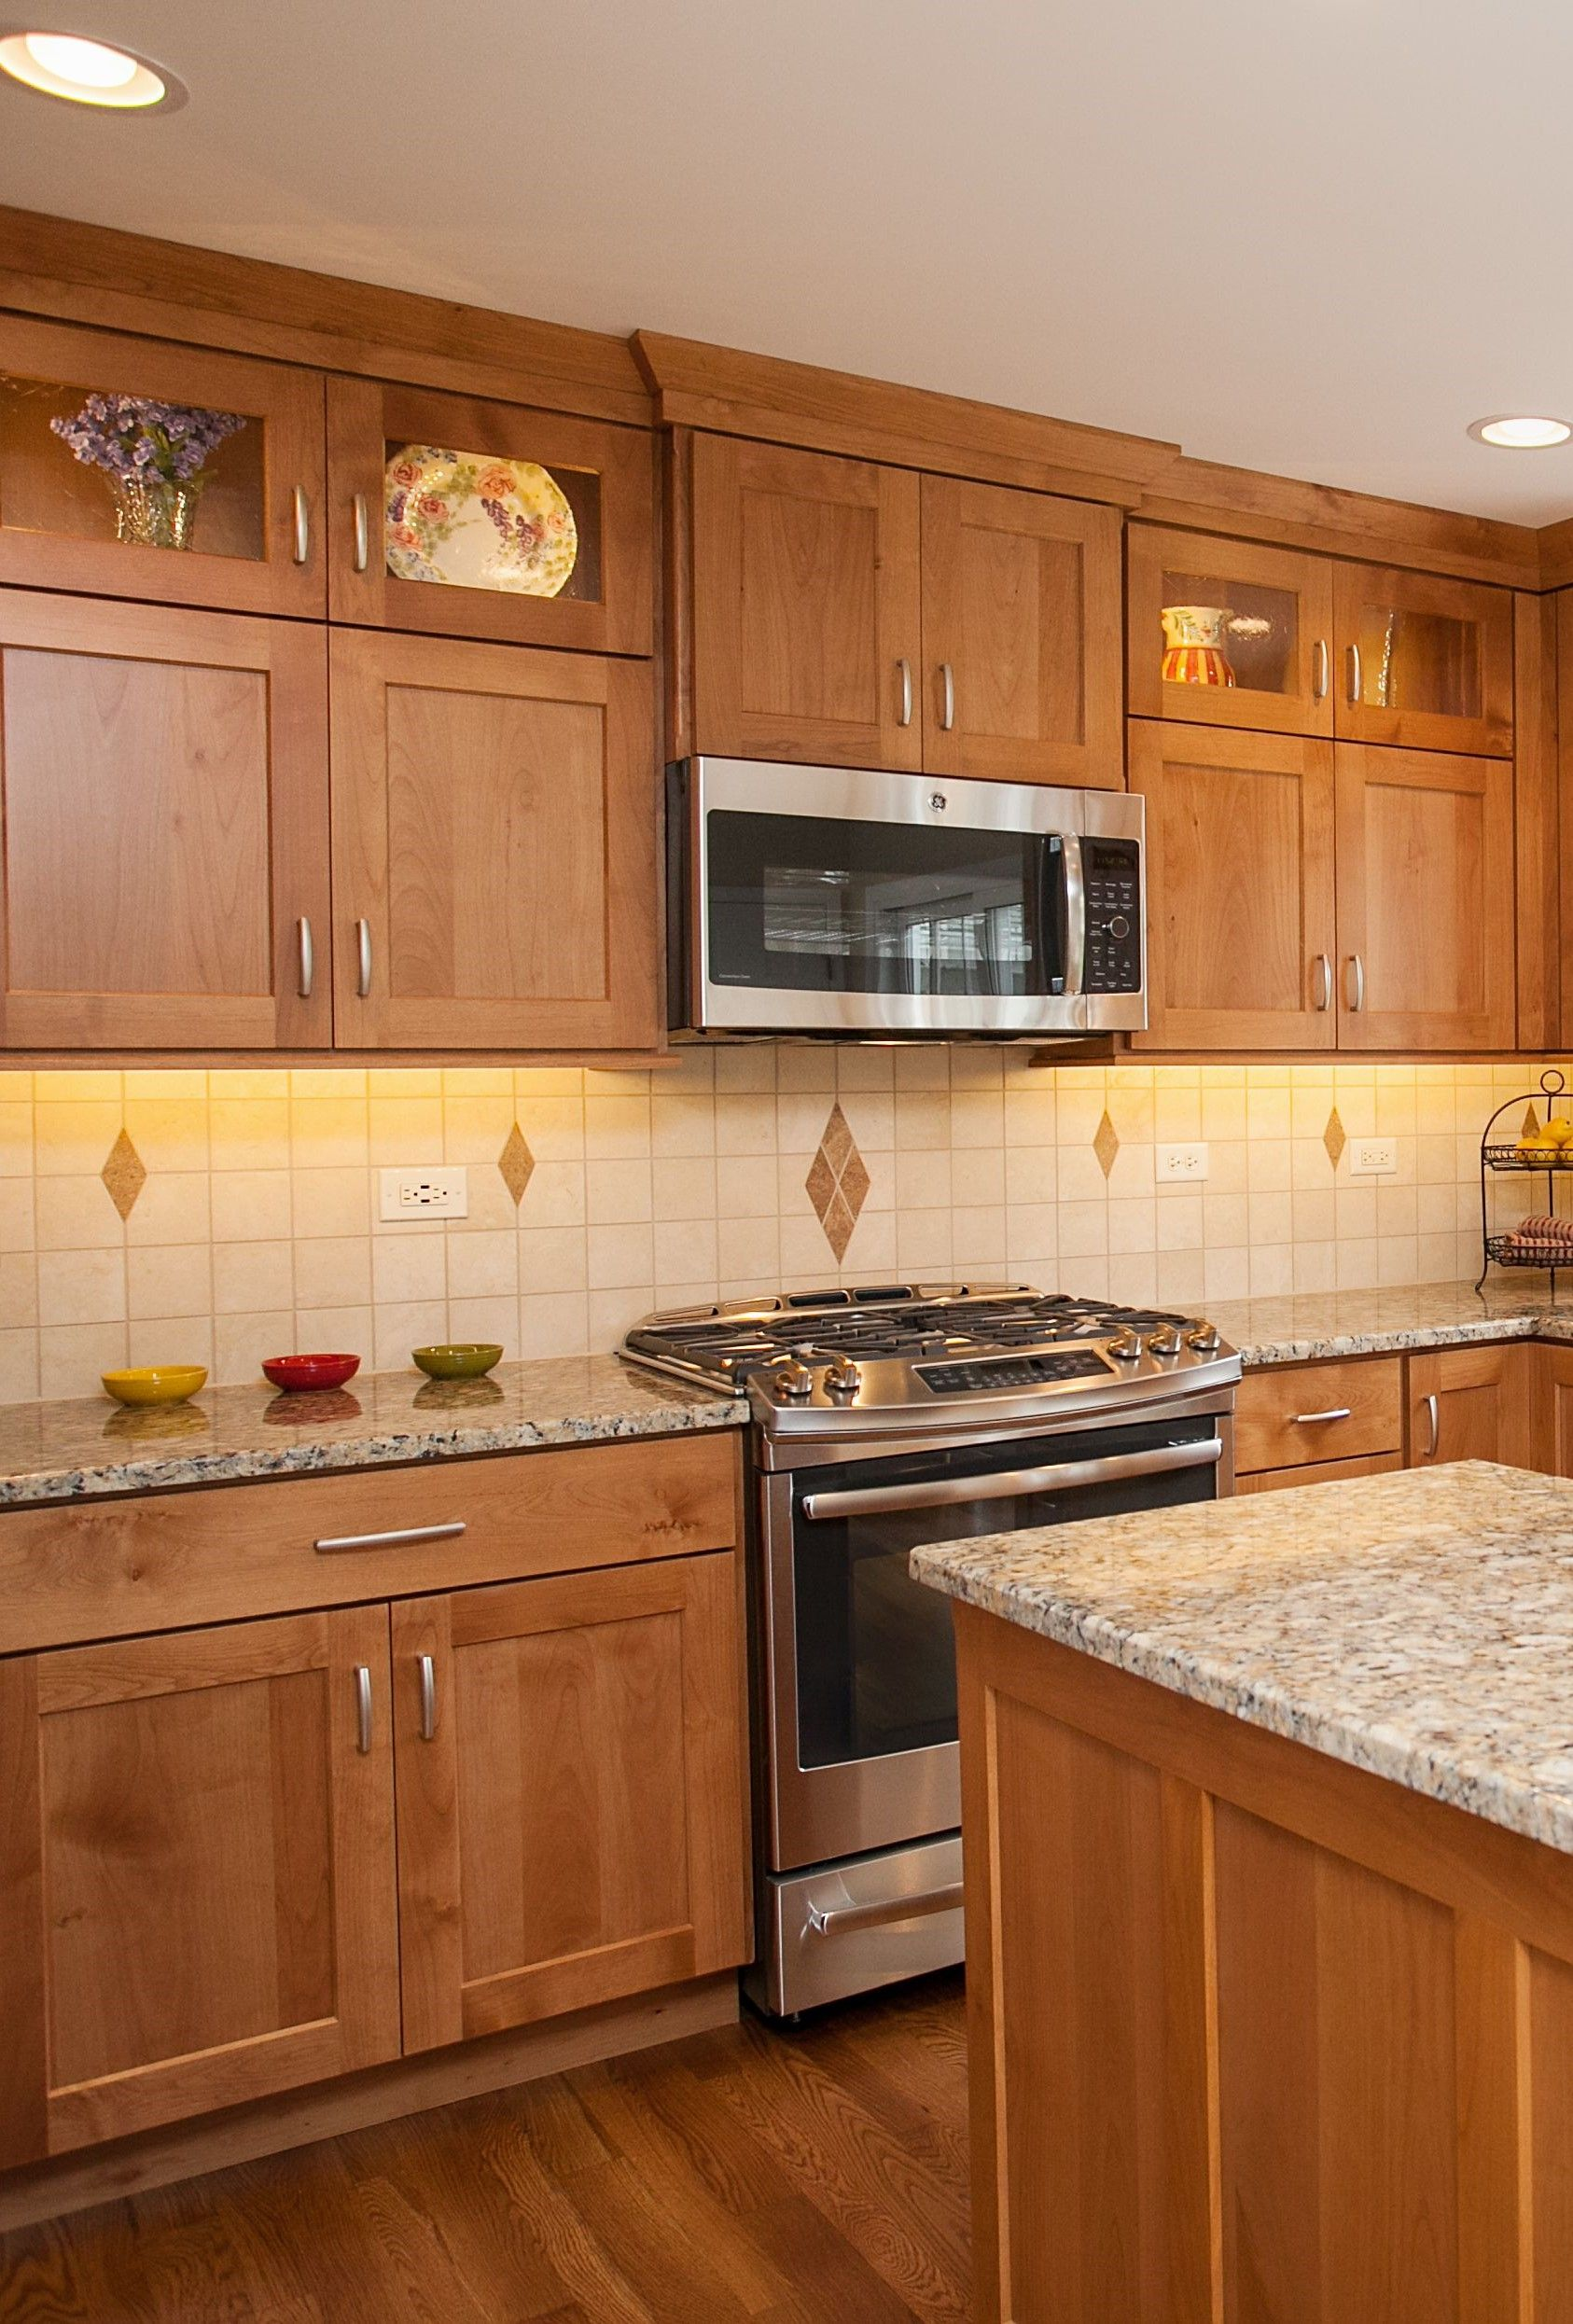 Decorating With Oak Cabinets Kitchen Cabinets Decor Freestanding Kitchen Kitchen Cabinets